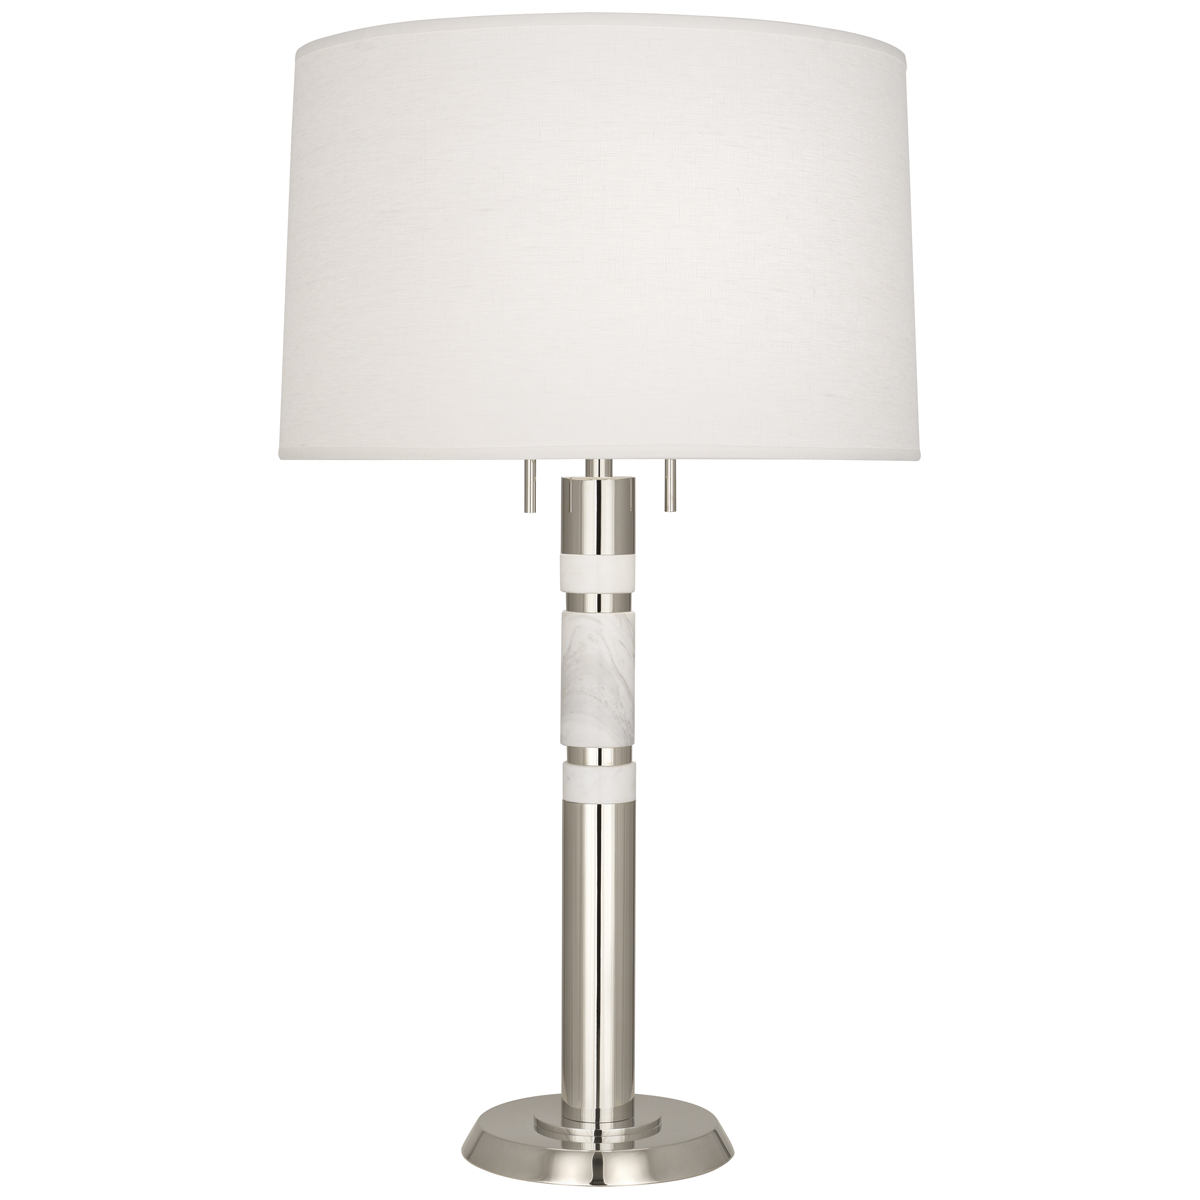 Hudson Table Lamp Style #S215